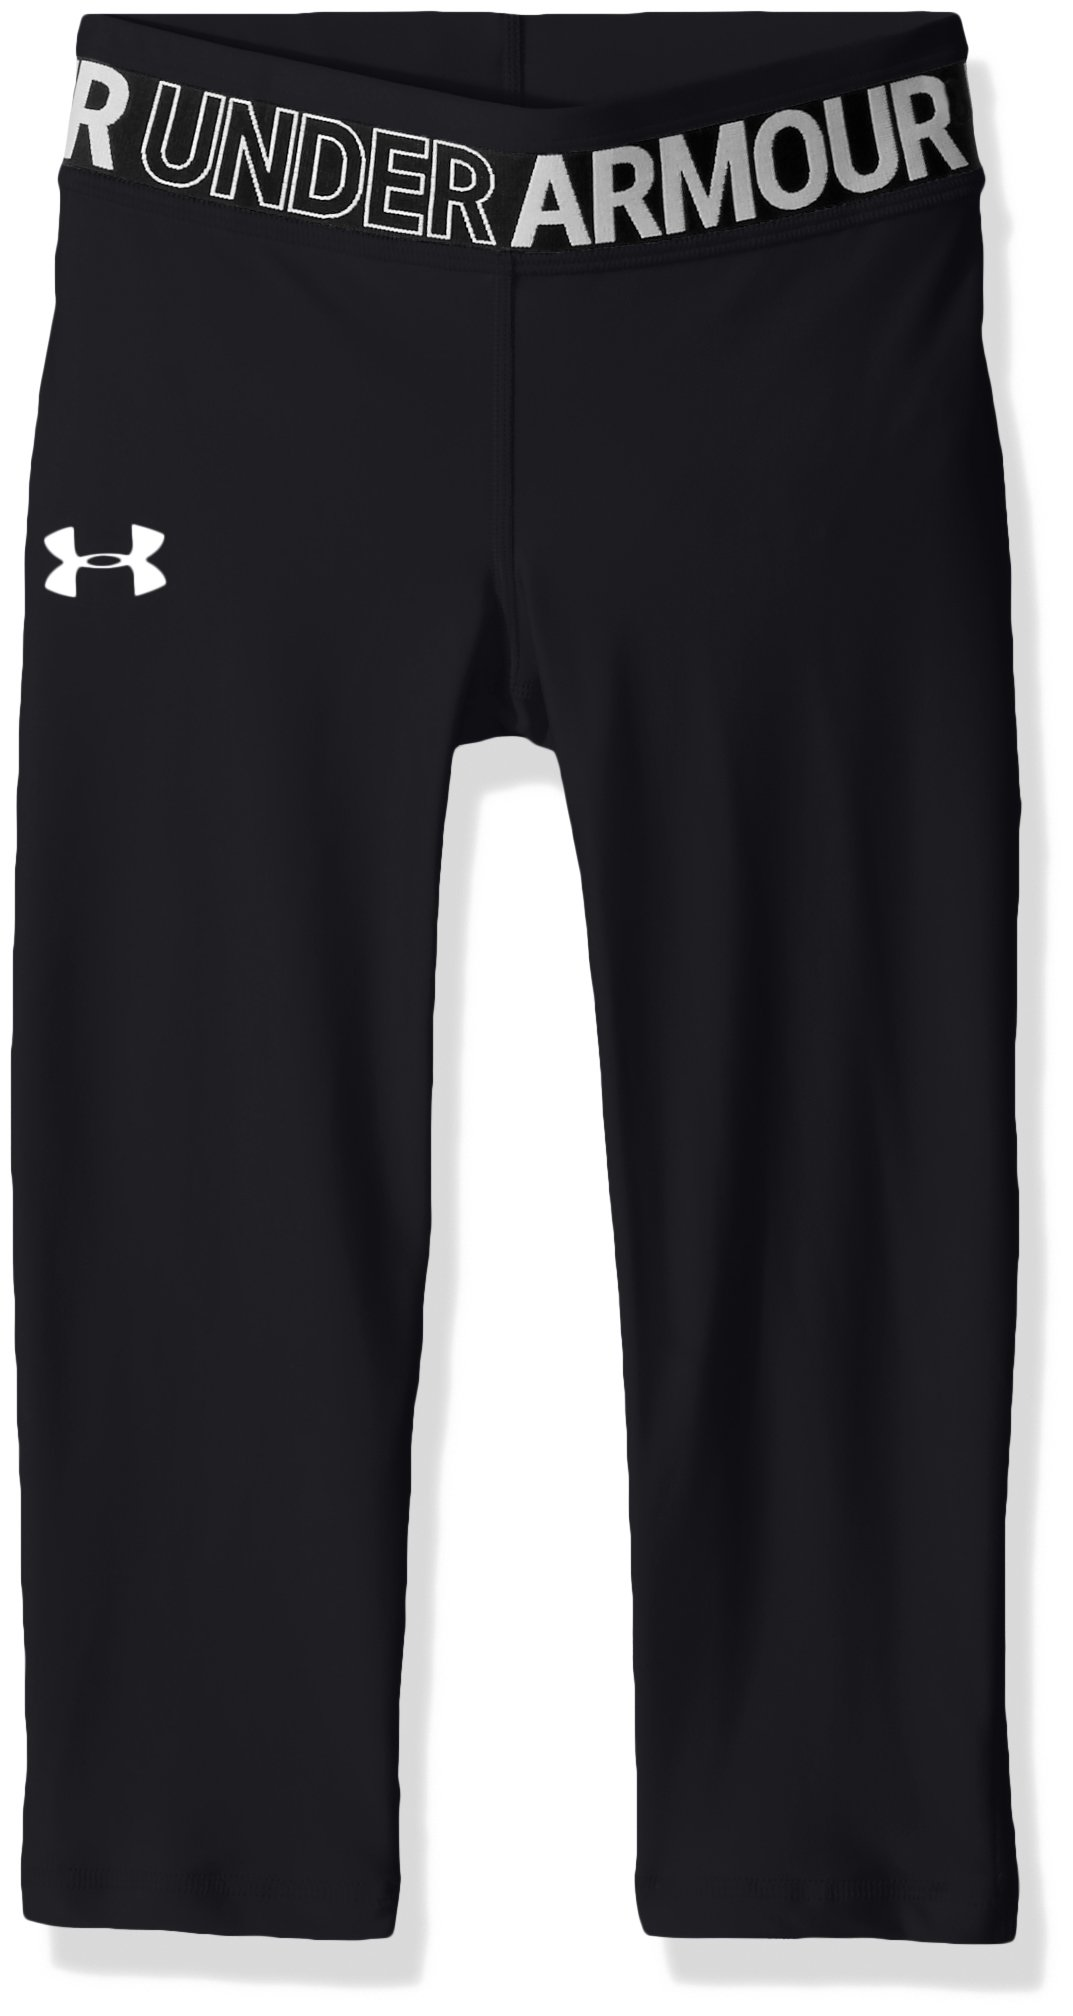 Under Armour Girls' HeatGear Armour Capris, Black /White, Youth X-Small by Under Armour